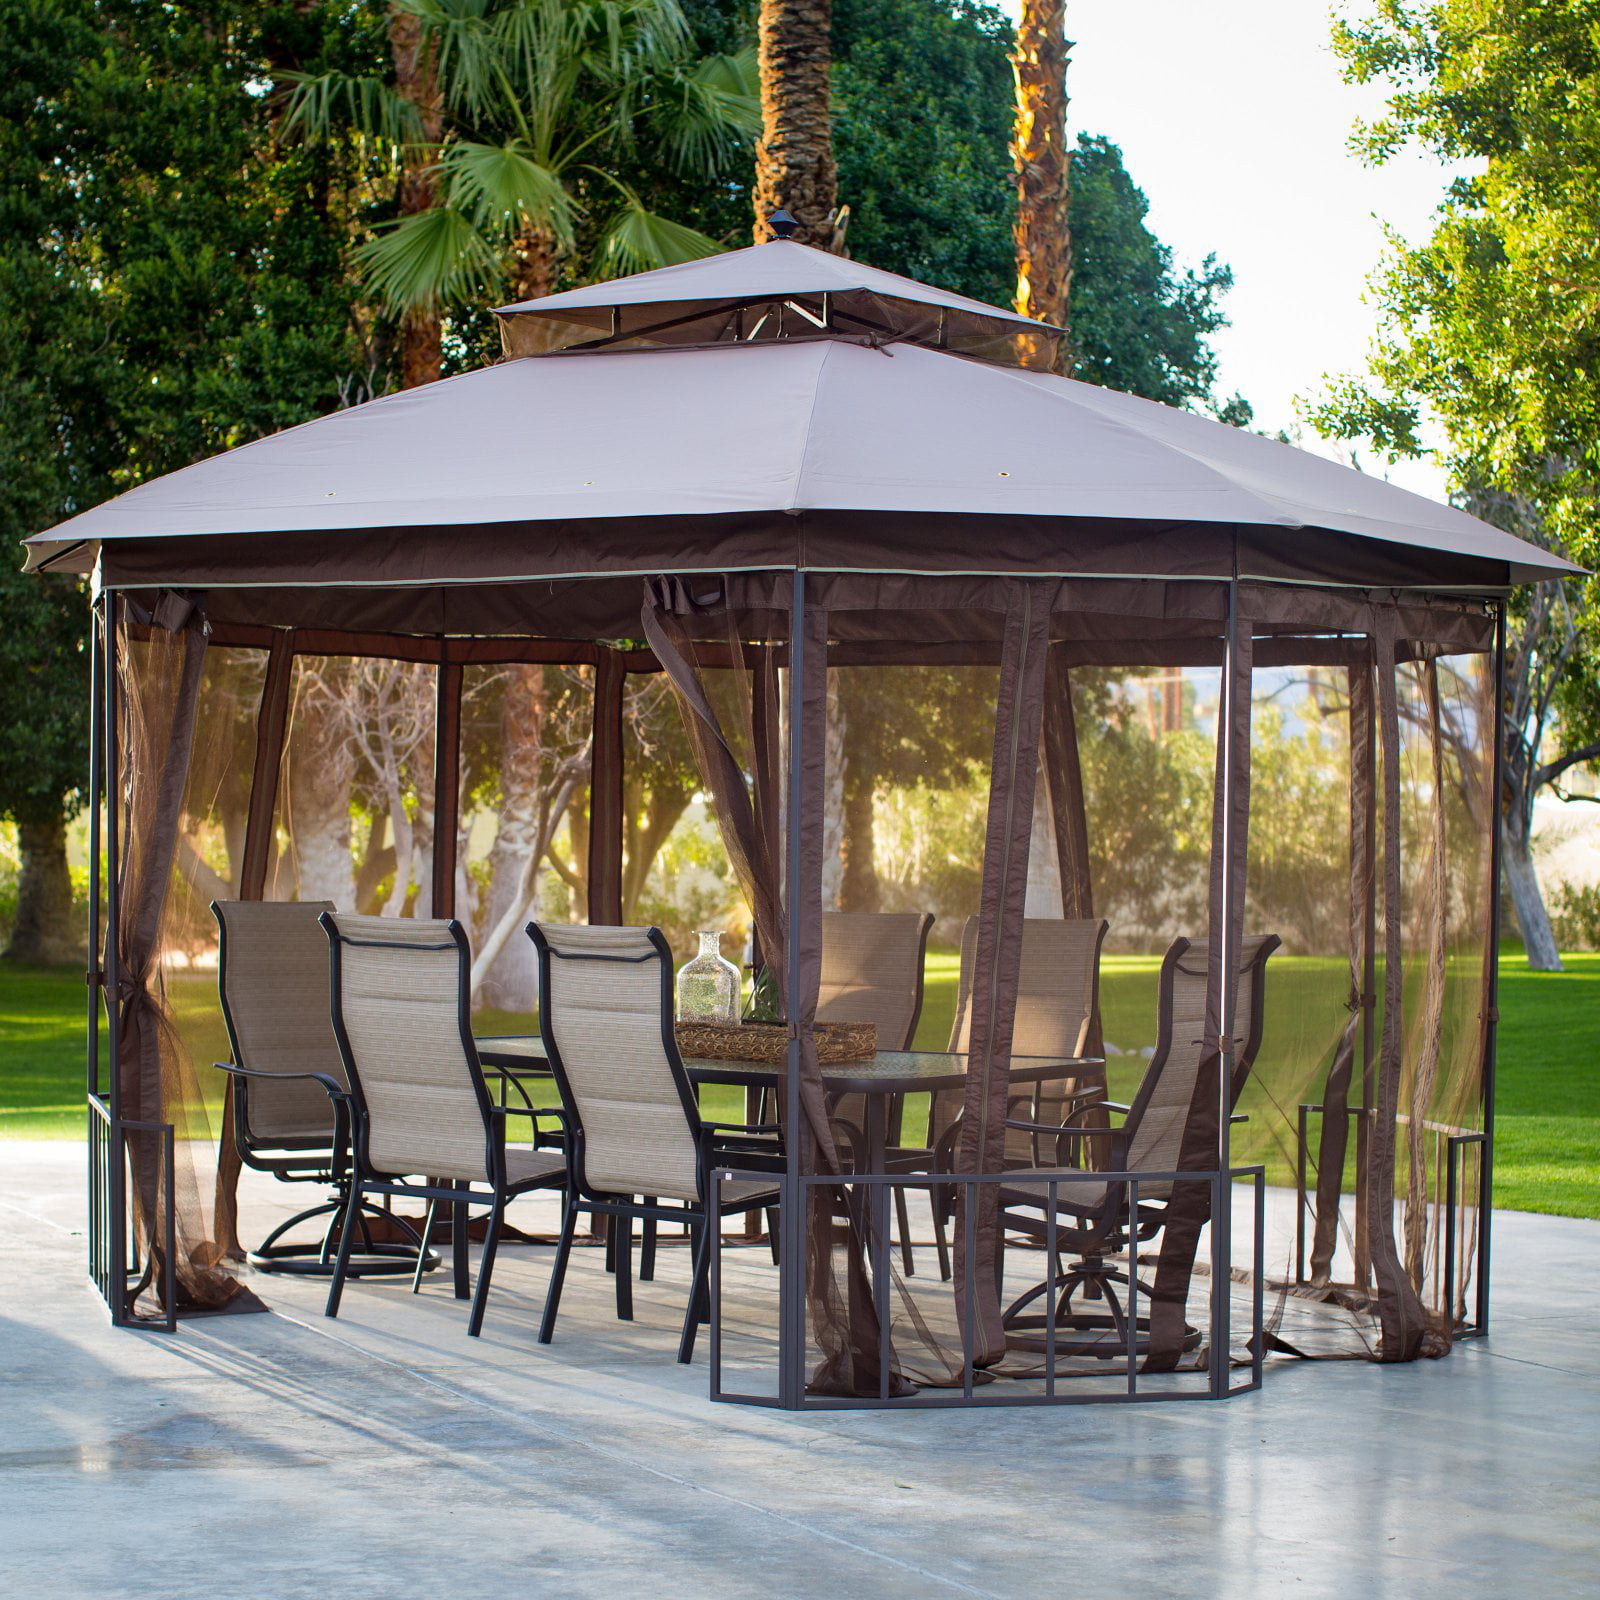 Belham Living Octagon 10 x 12 ft. Gazebo with Curtains by Gazebos